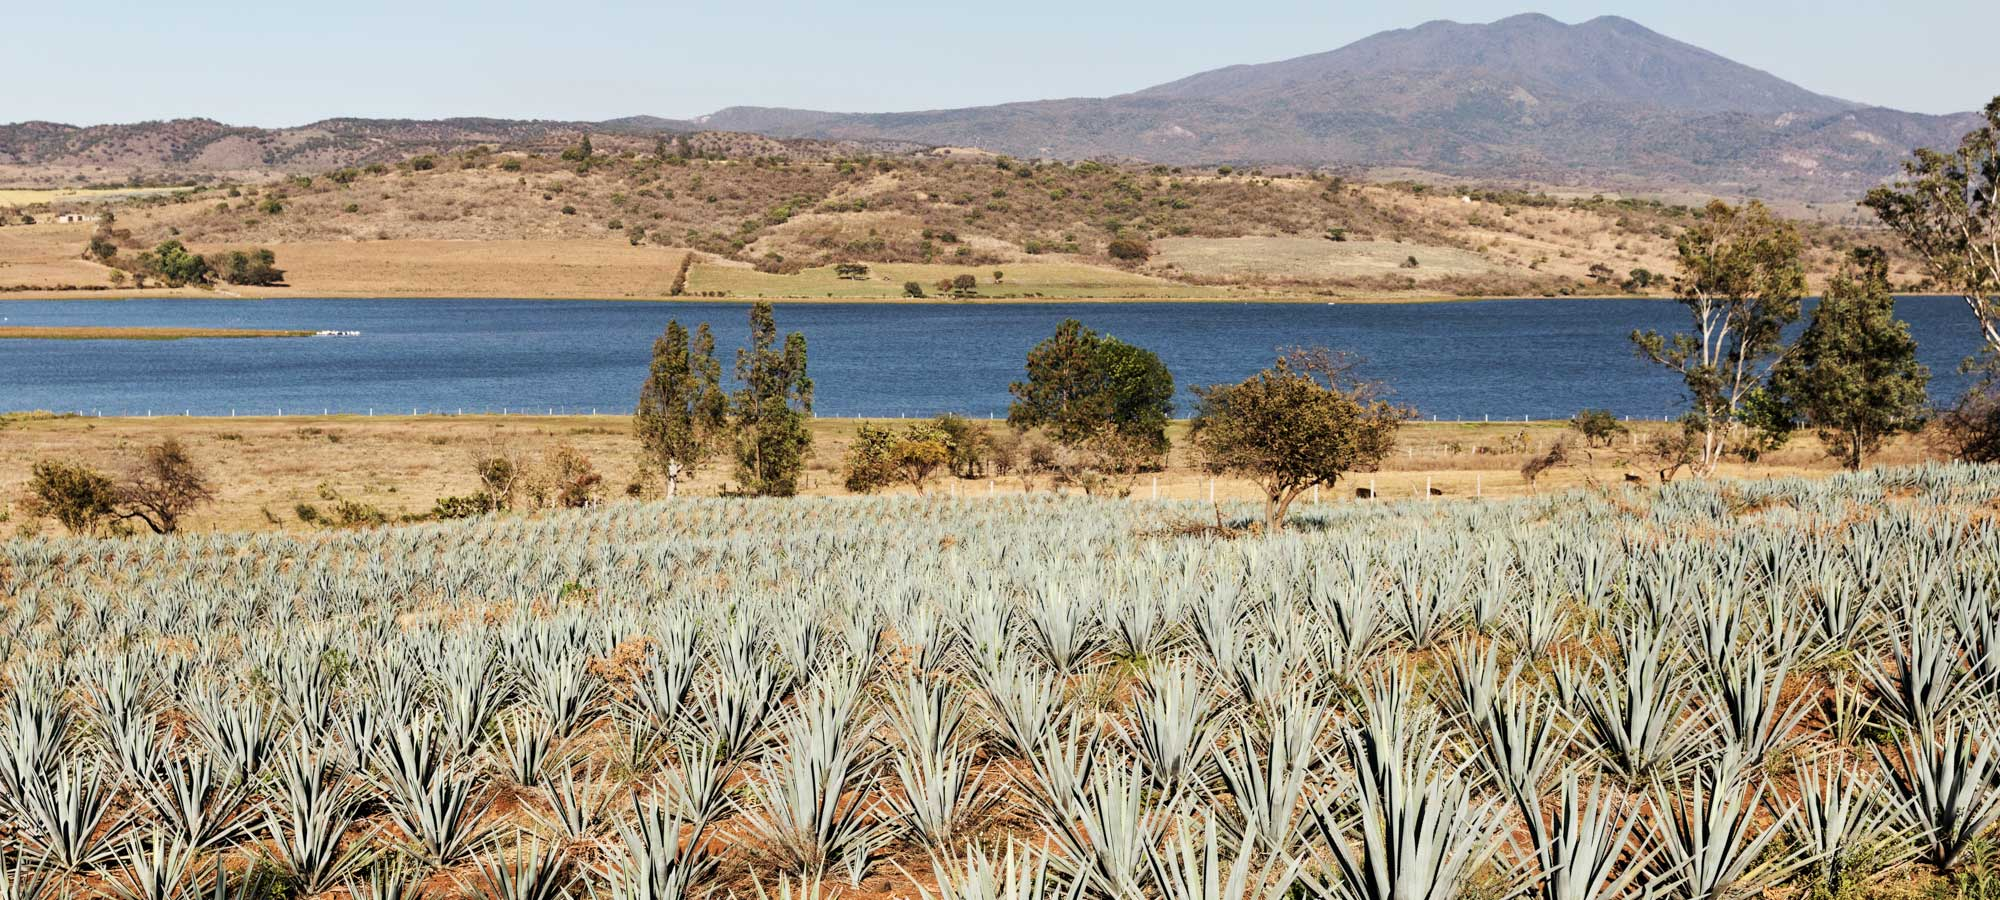 What Happens When You Treat Making Tequila Like Champagne